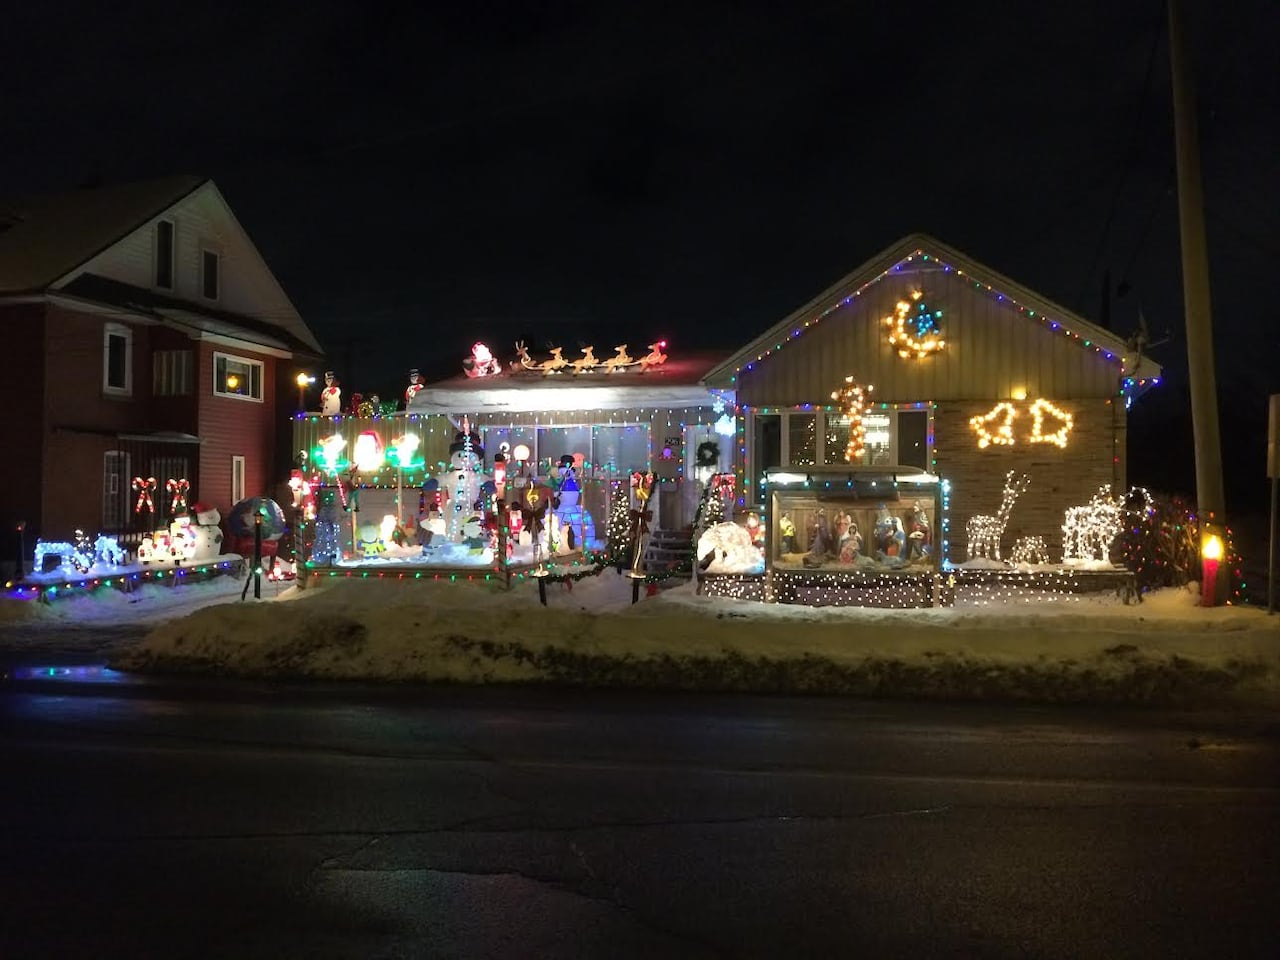 How Much Electricity Do Christmas Lights Use.Vibrant Christmas Light Display Not Too Costly For This